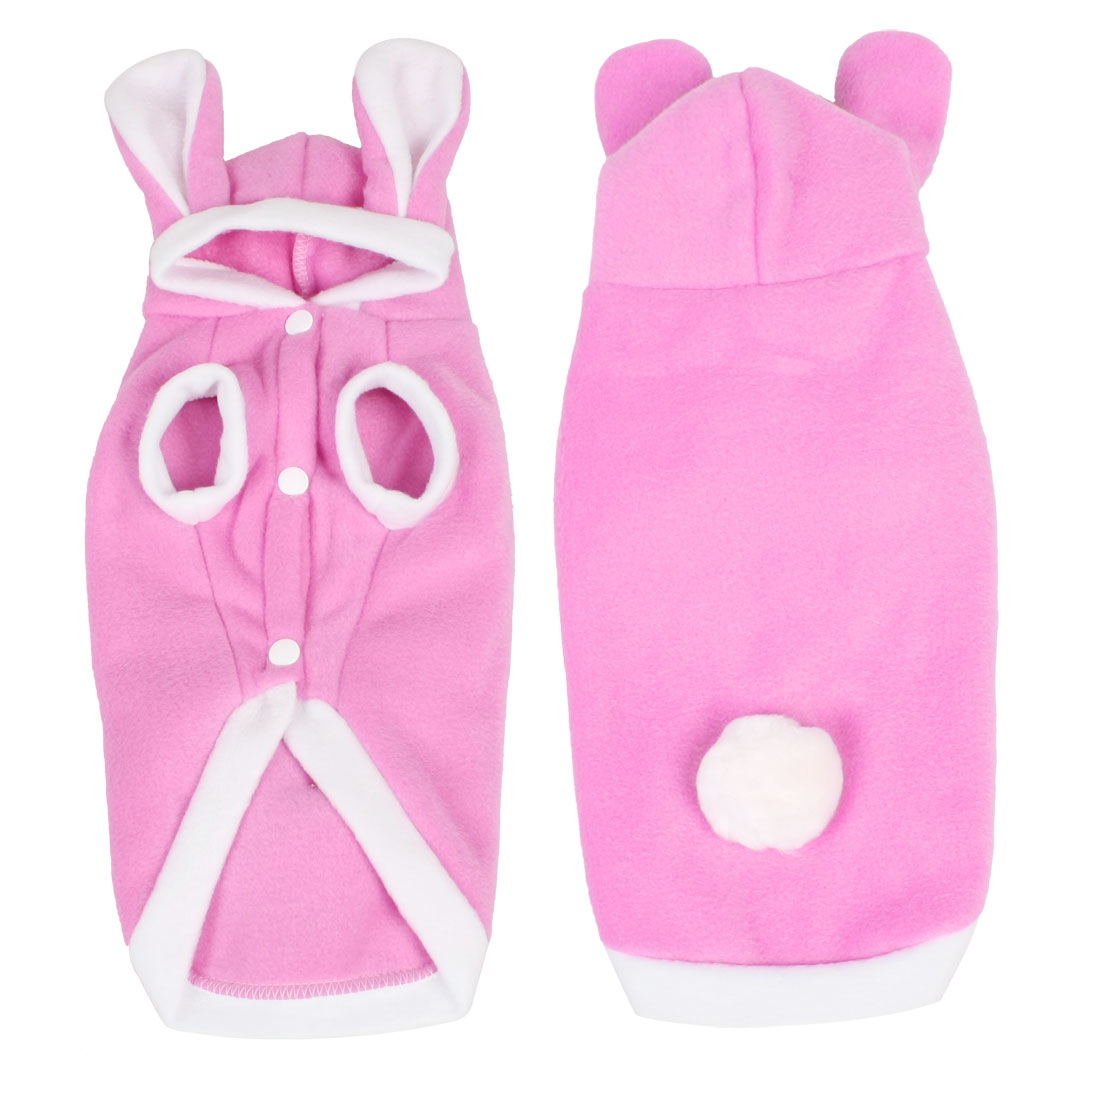 Rabbit Pink Pet Puppy Dog Apparel Hoodies Coat Jacket Clothes Size S